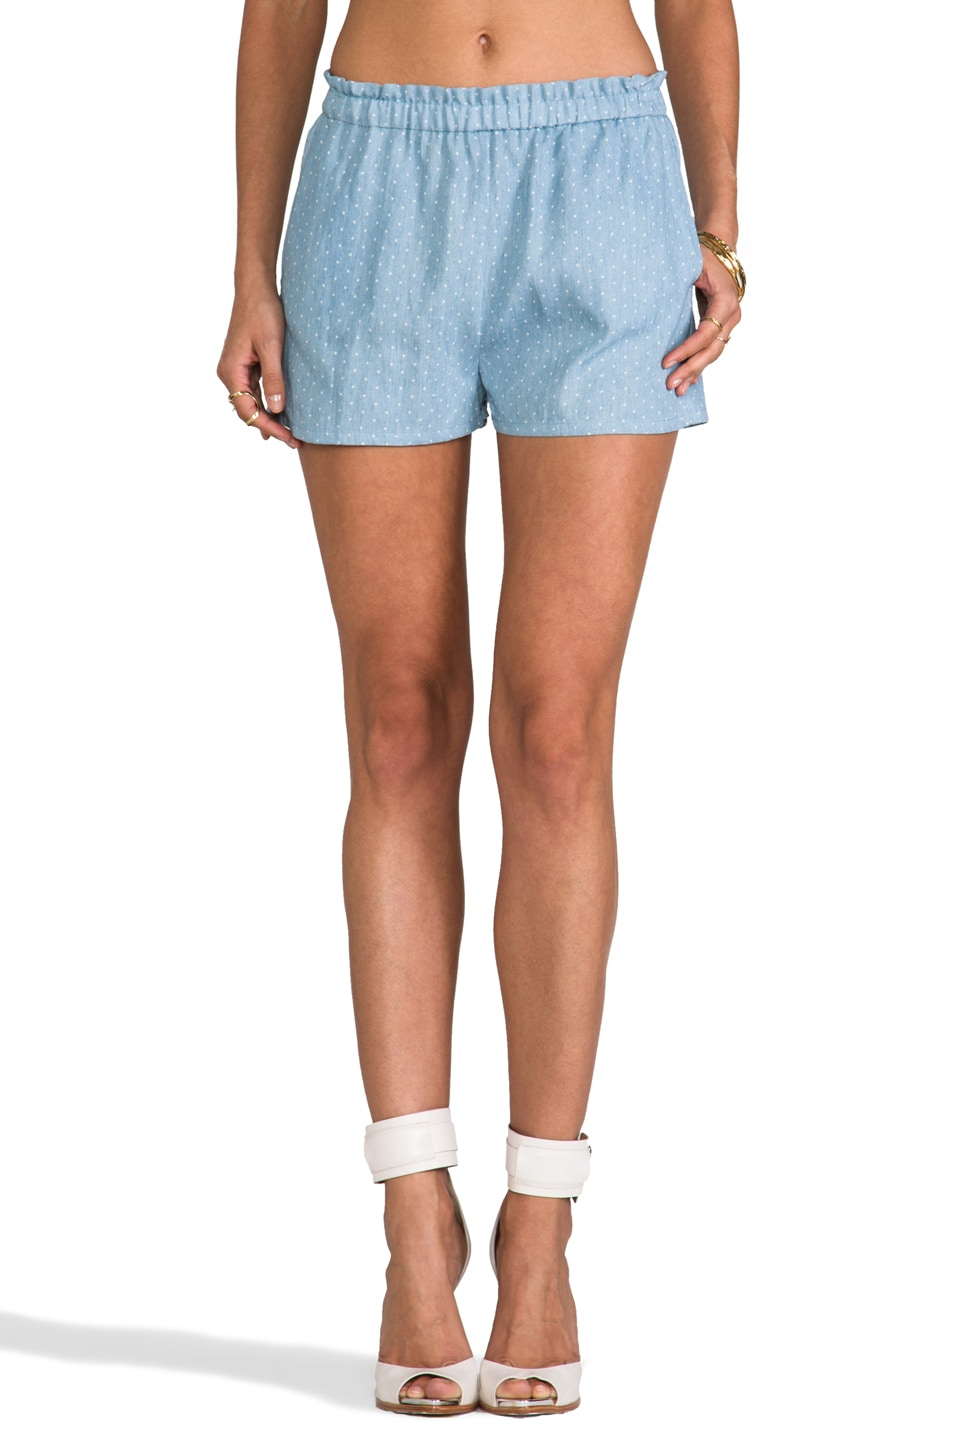 camilla and marc camilla & marc C&M Light Headed Chambray Spot Short in Blue